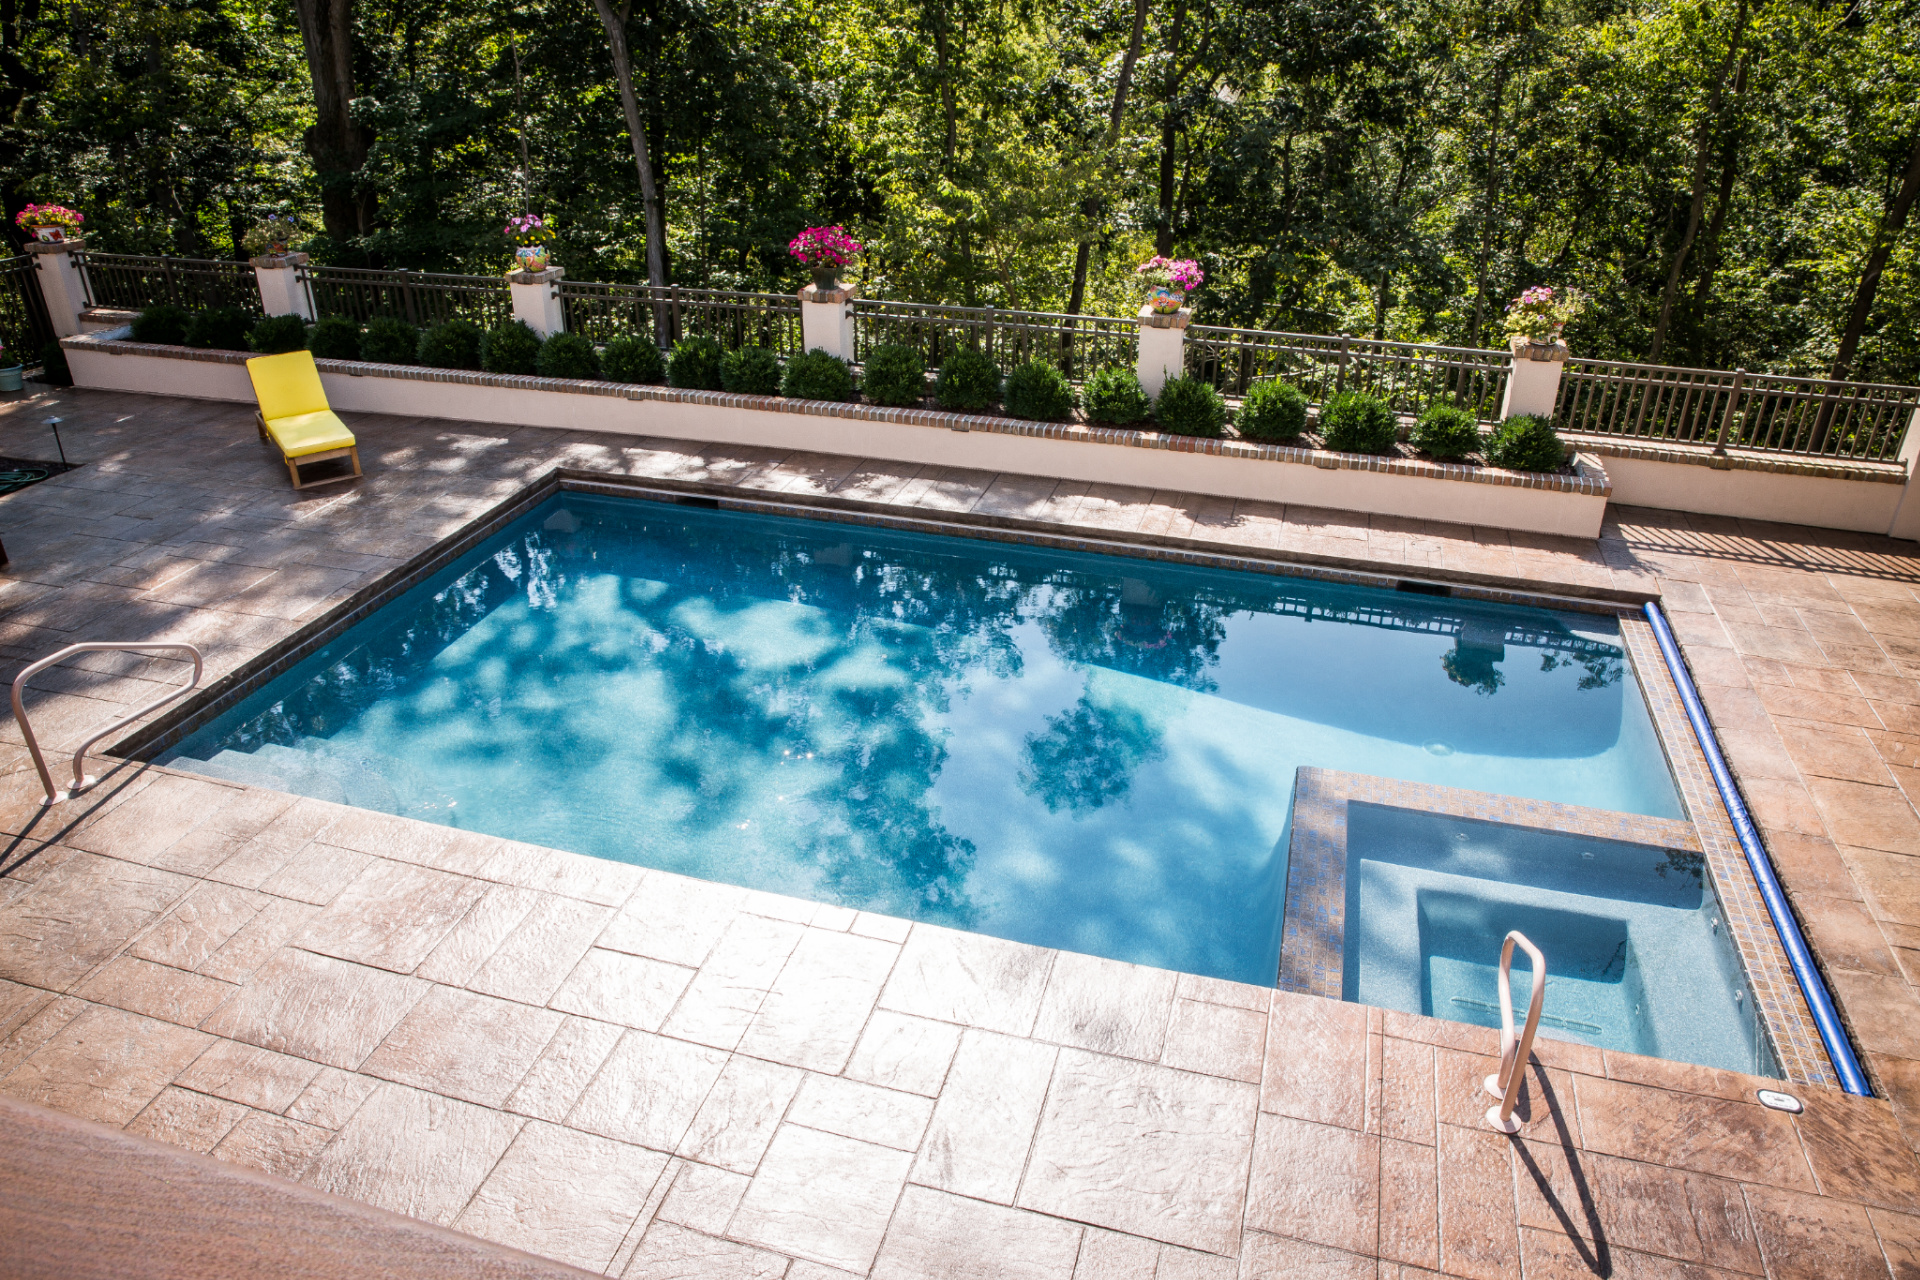 Prepping your backyard for a pool & hot tub